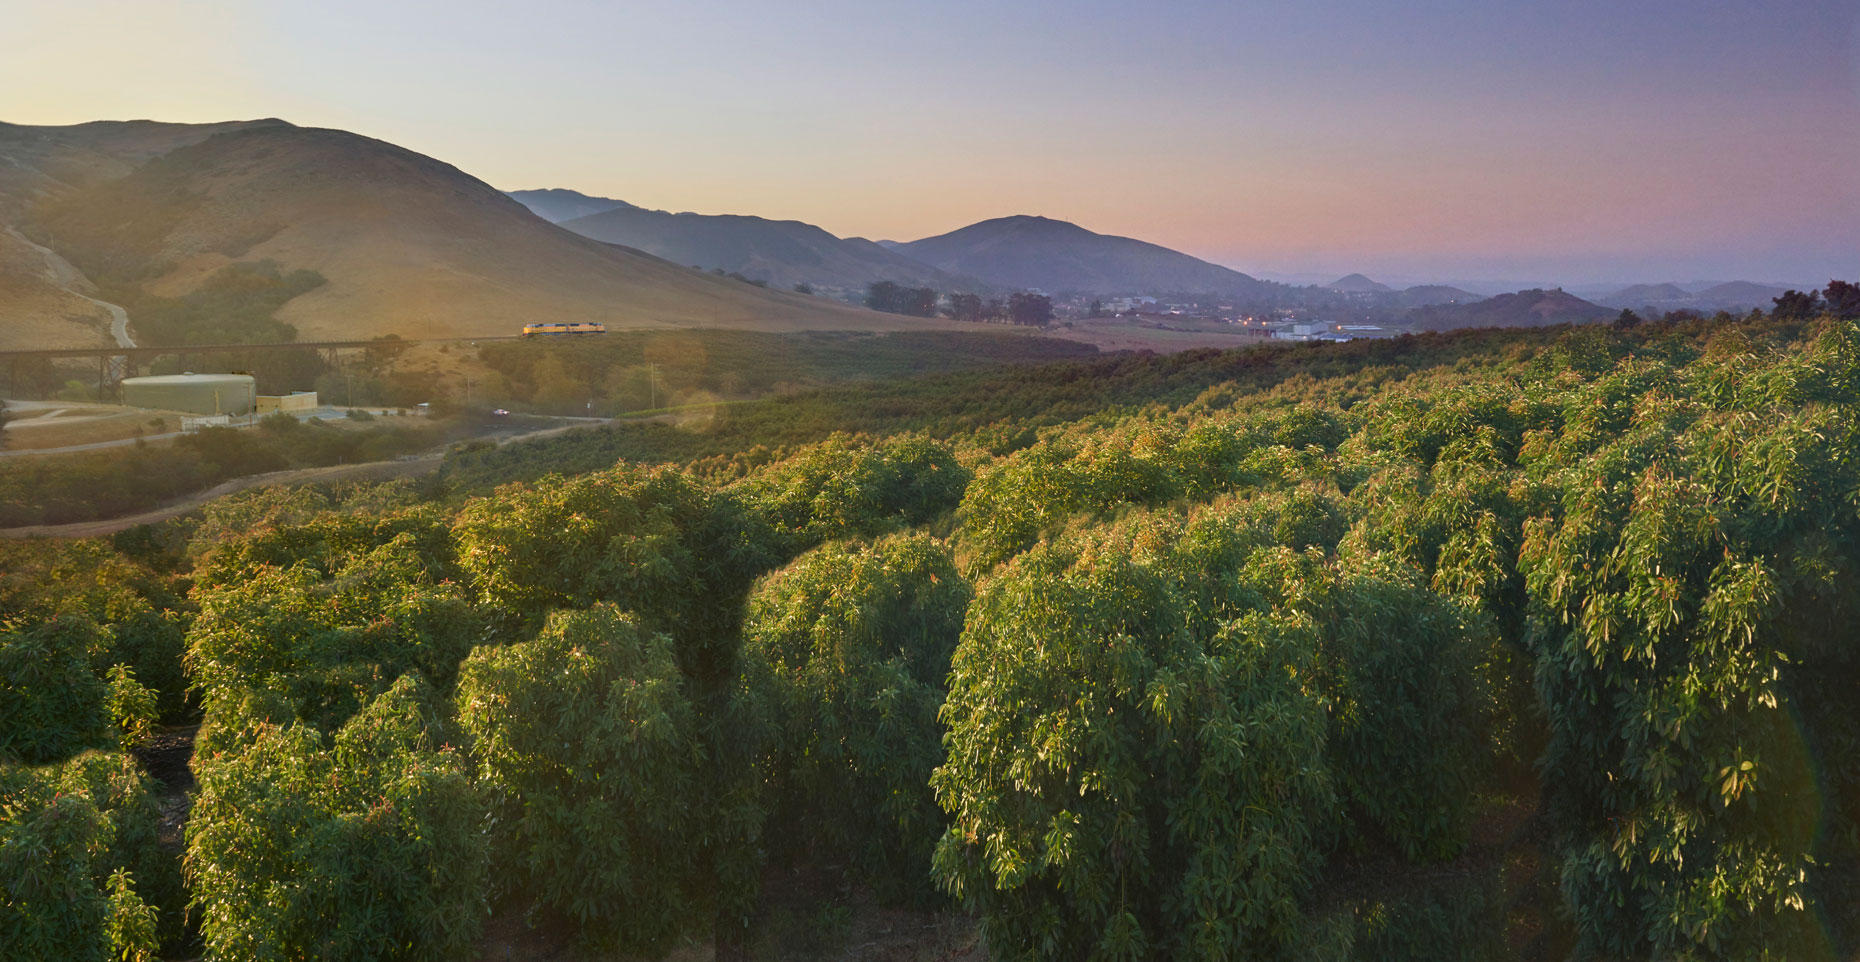 Avocado-orchard-at-sunrise-central-coast-of-California-by-Los-Angeles-farm-photographer